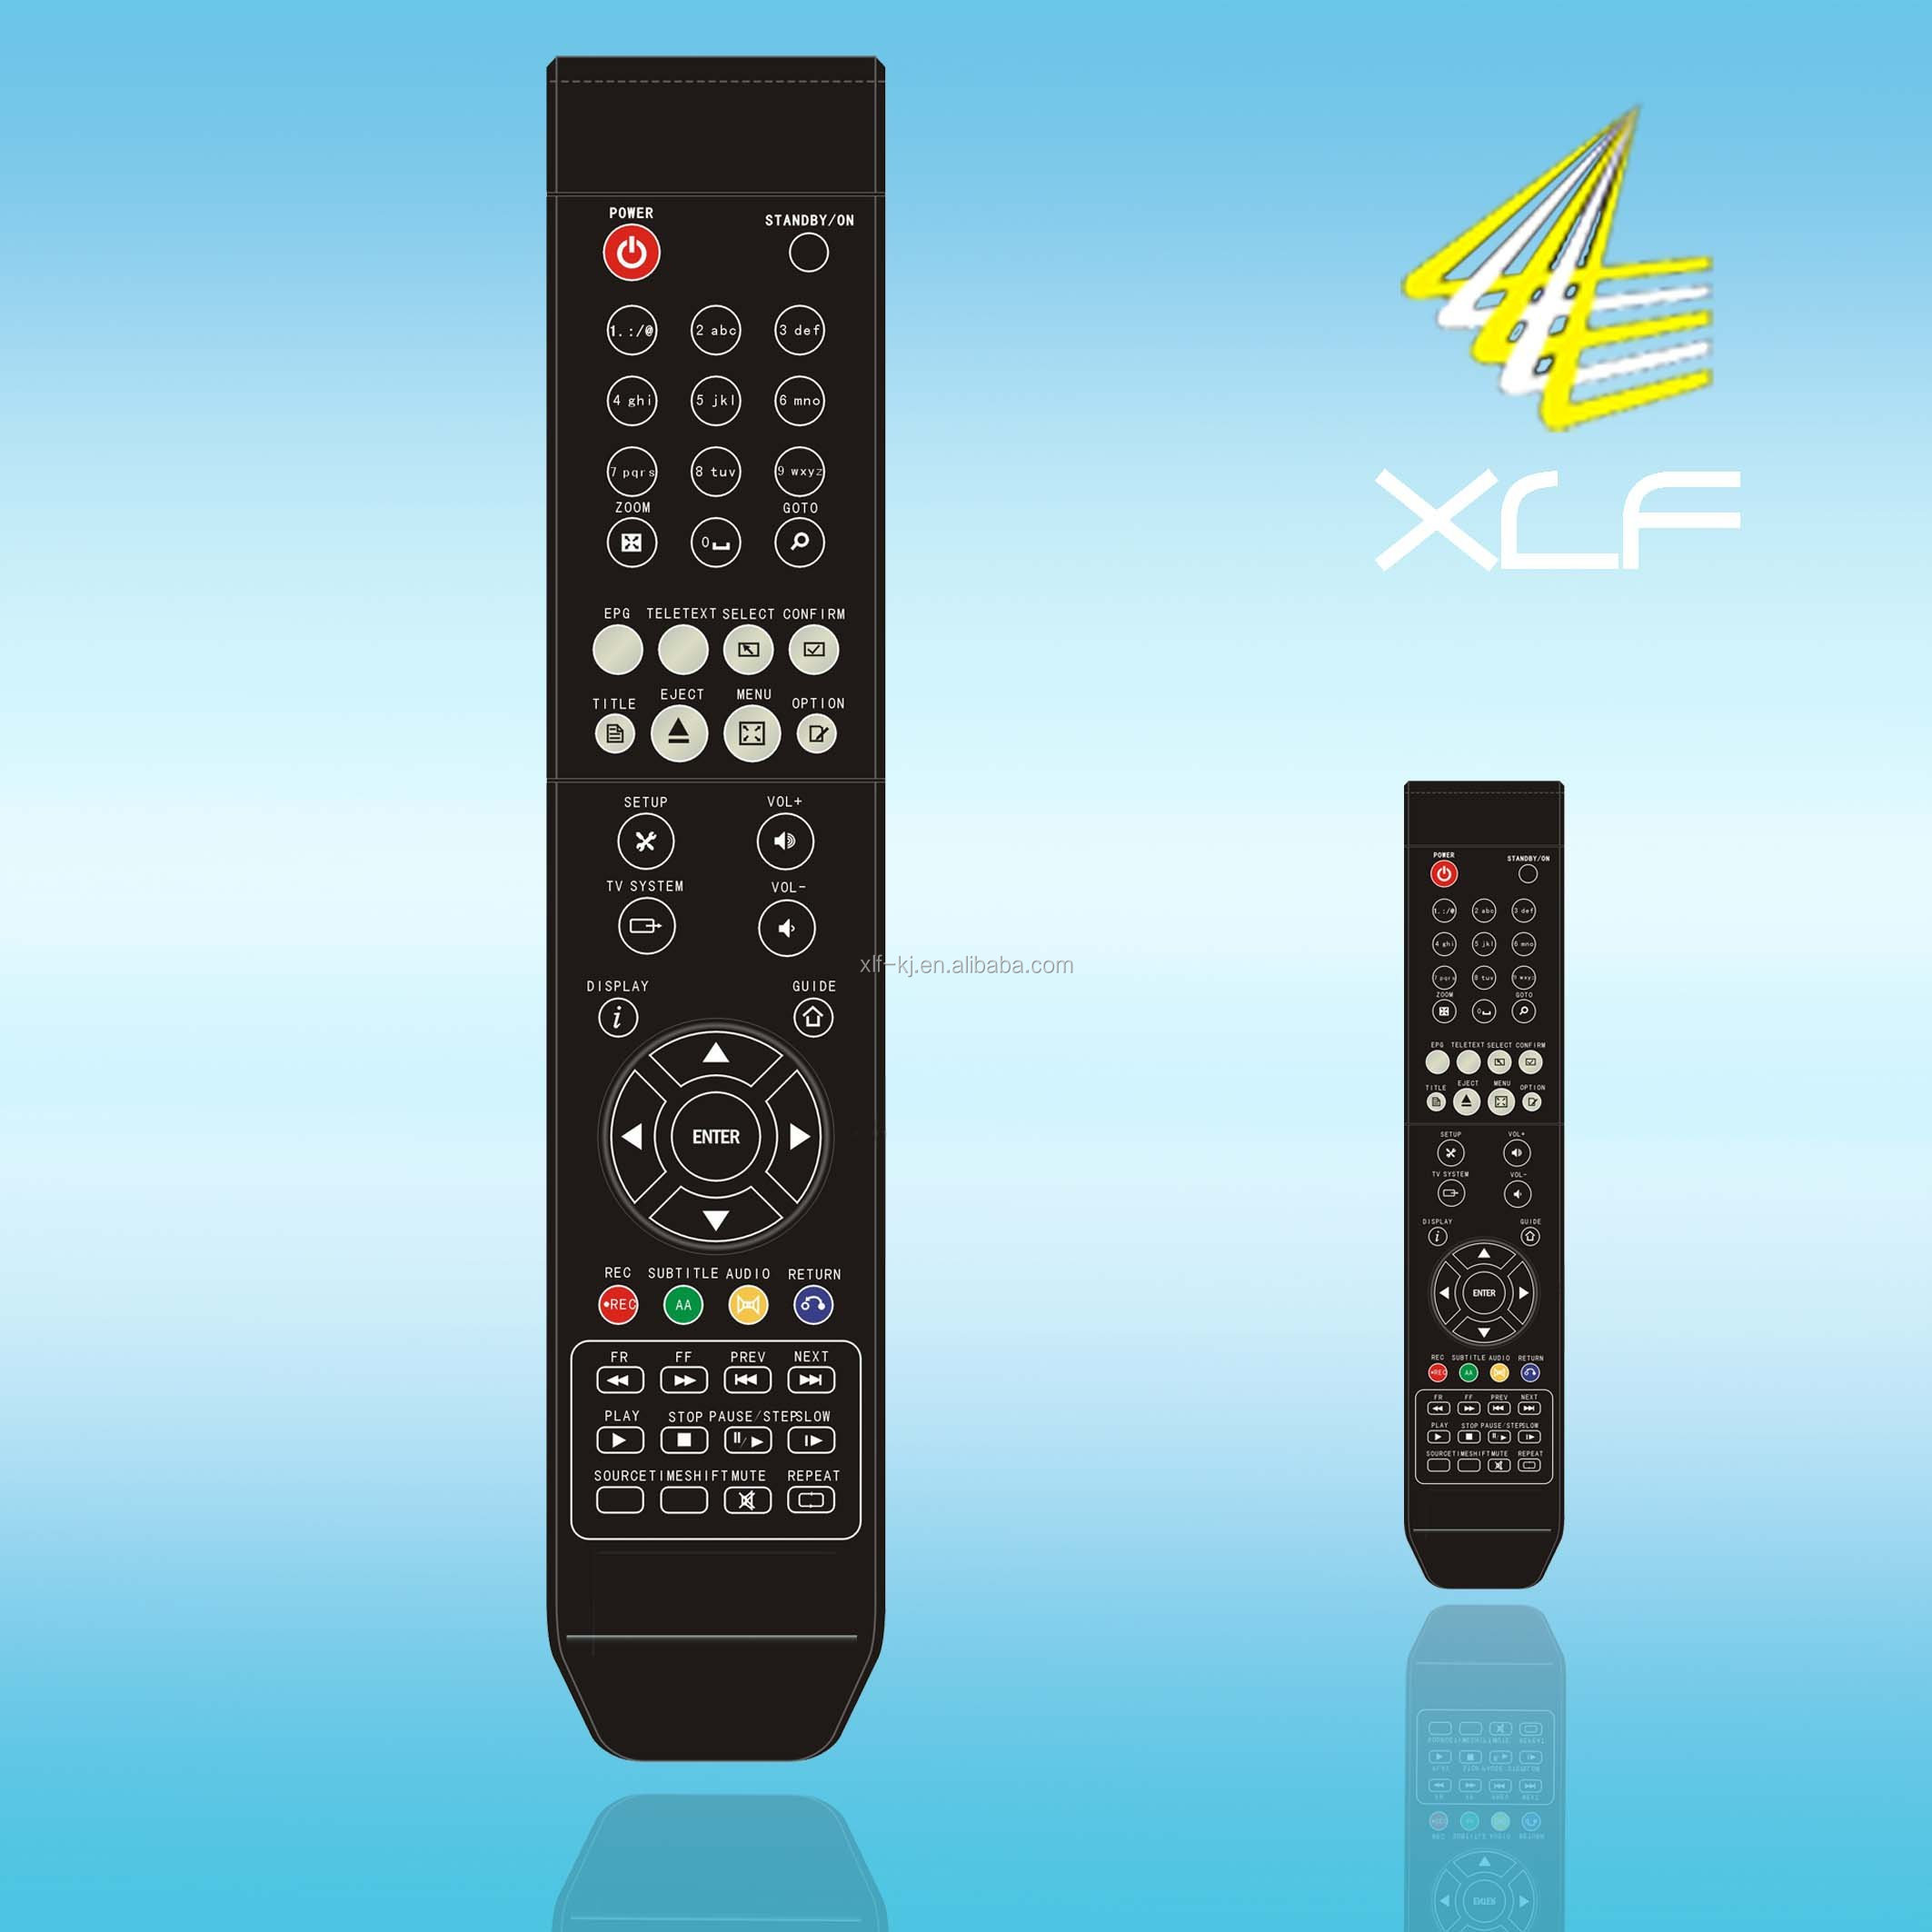 55 keys learning function supra tv remote control in high quality